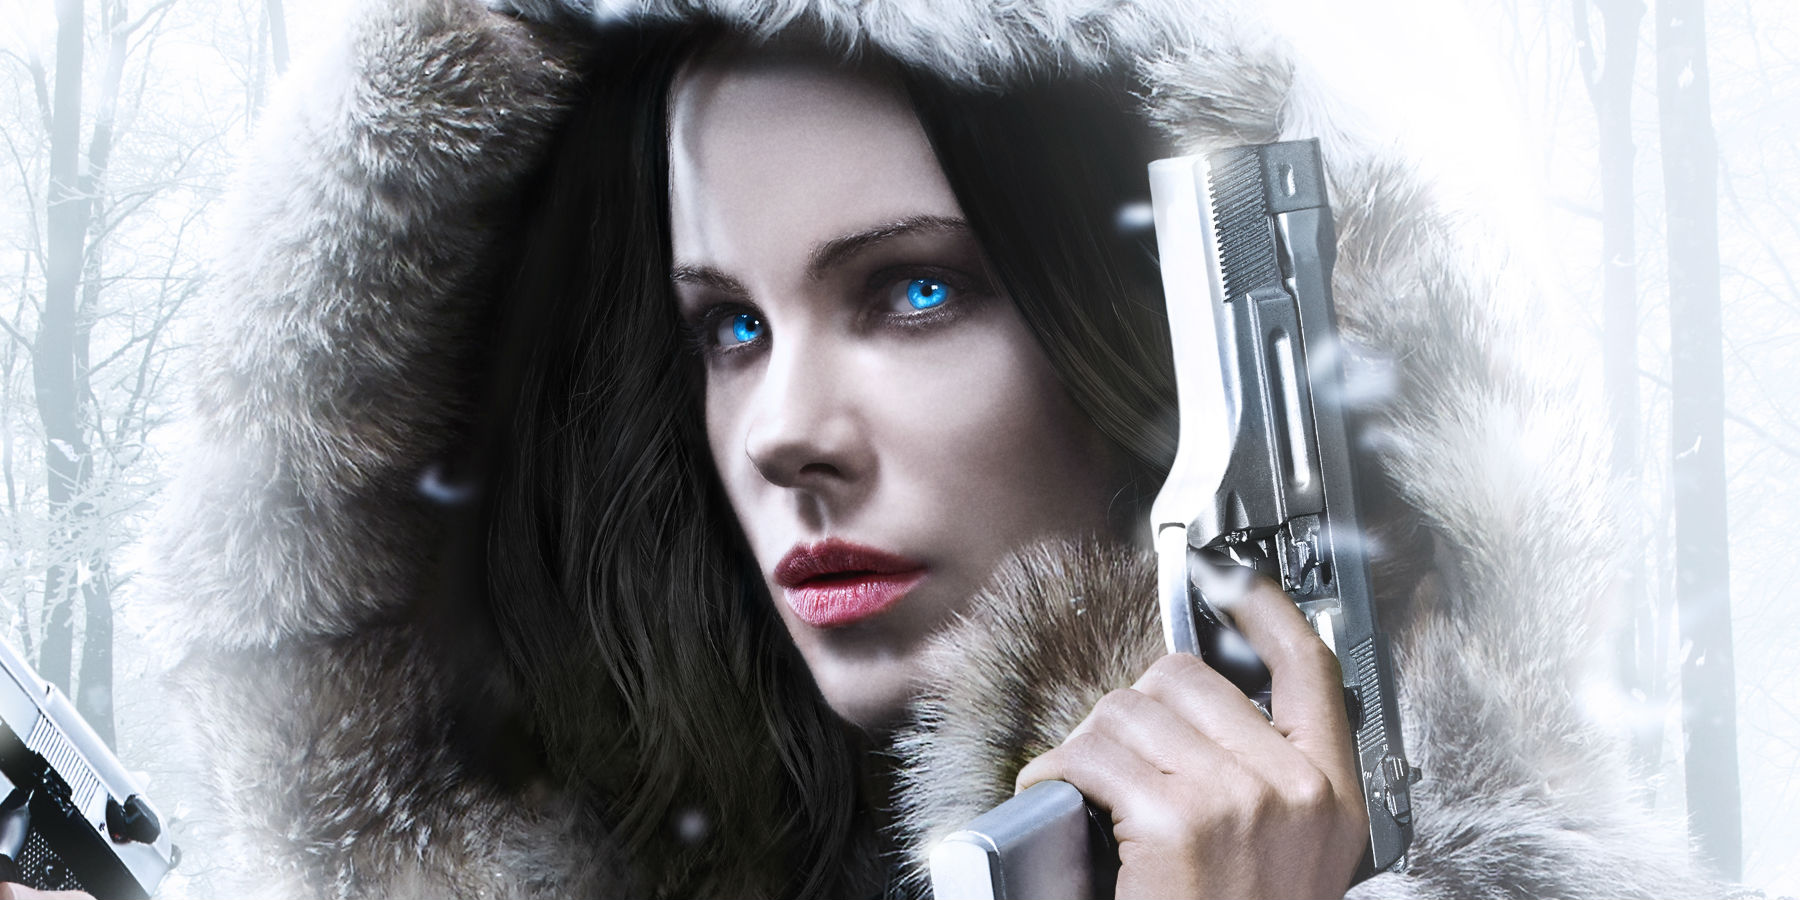 This is a still from the film Underworld: Blood Wars.